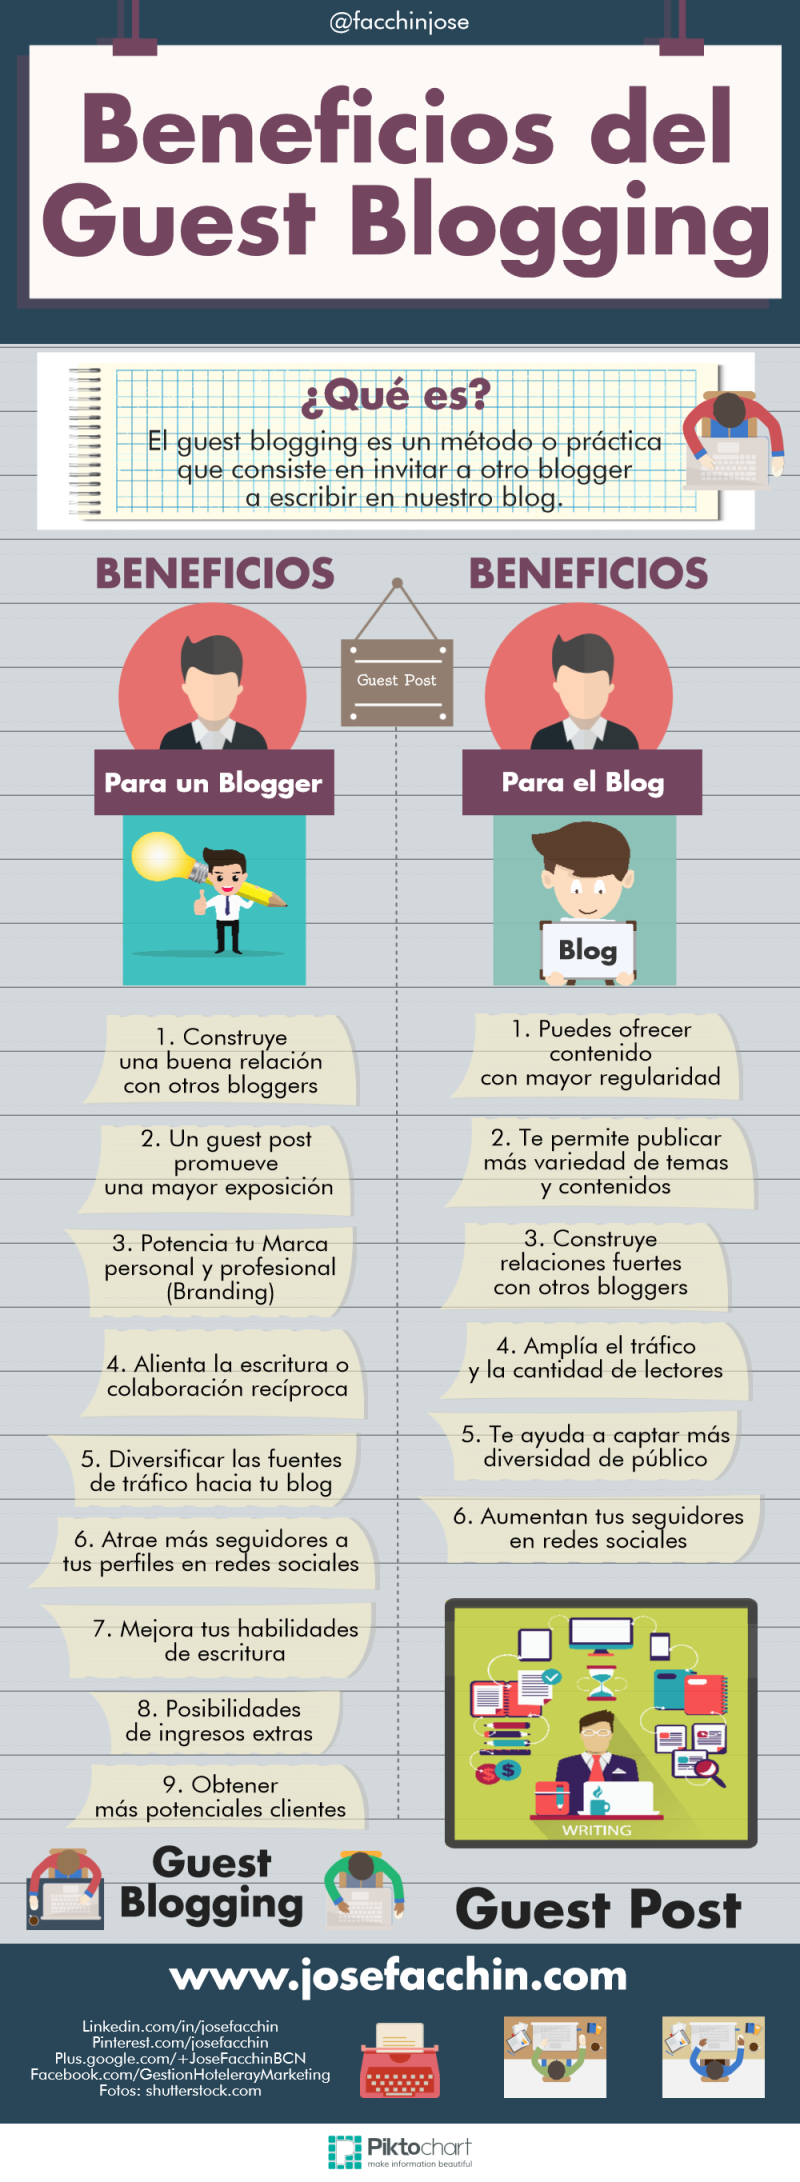 Beneficios del guest blogging